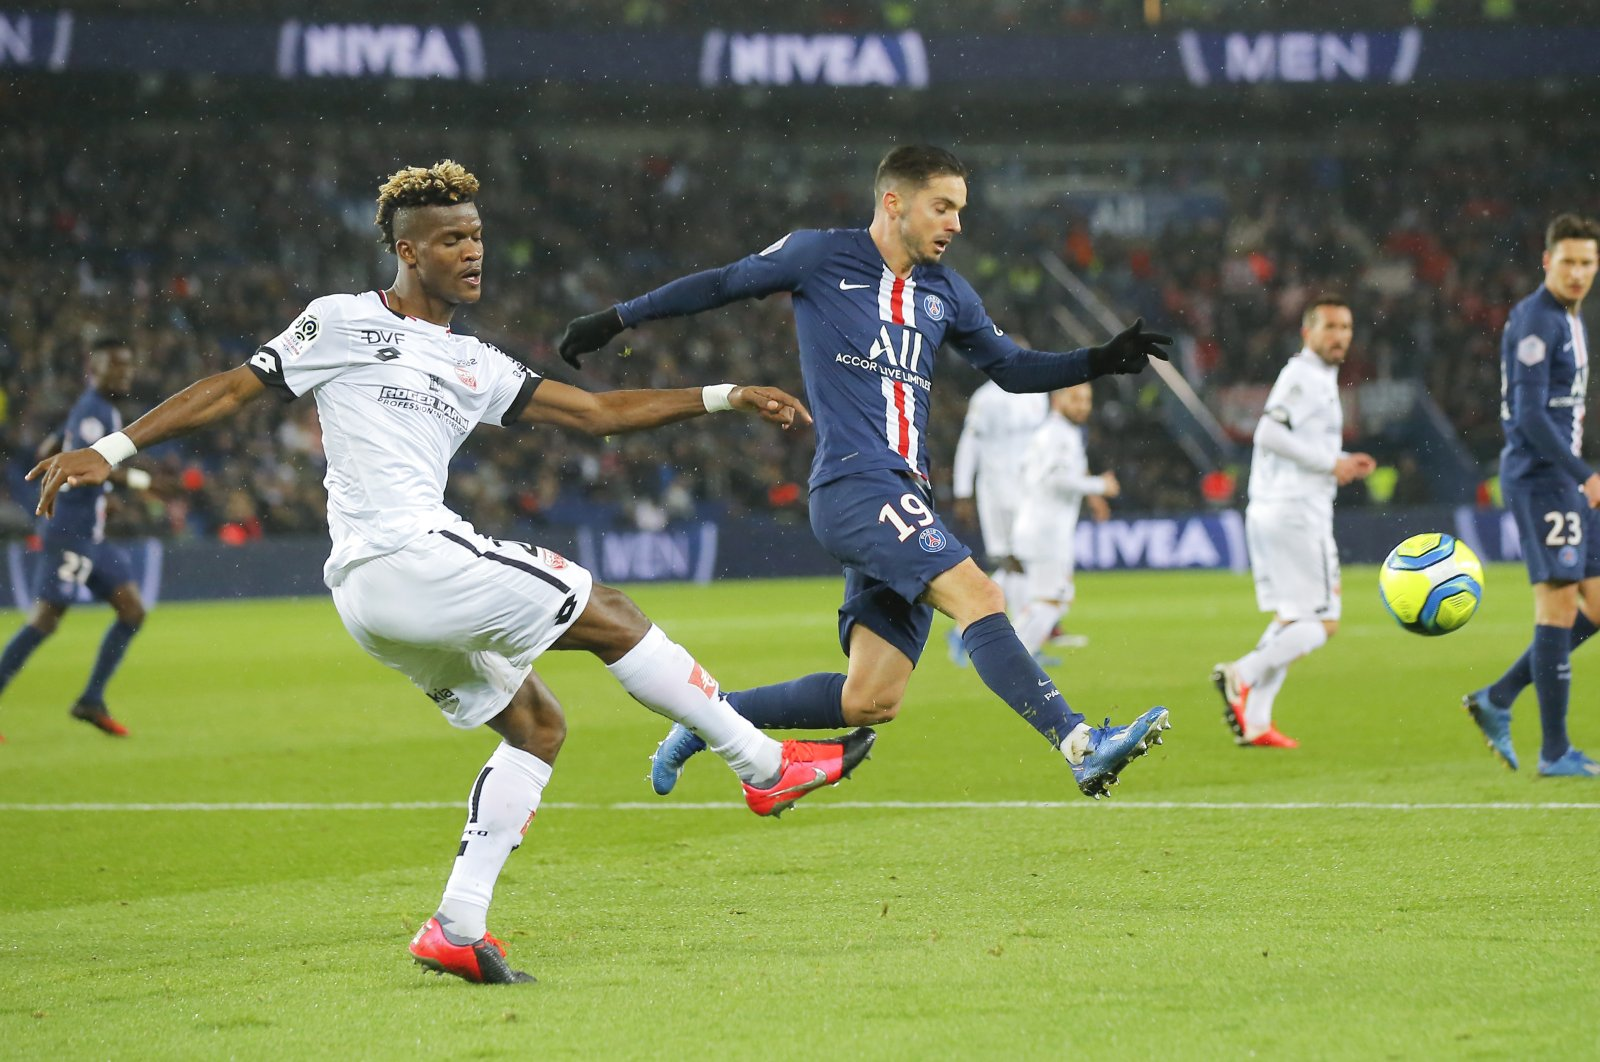 Dijon's Didier Ndong (L) kicks the ball ahead of PSG's Pablo Sarabia during a French Ligue 1 match in Paris, France, Feb. 29, 2020. (AP Photo)